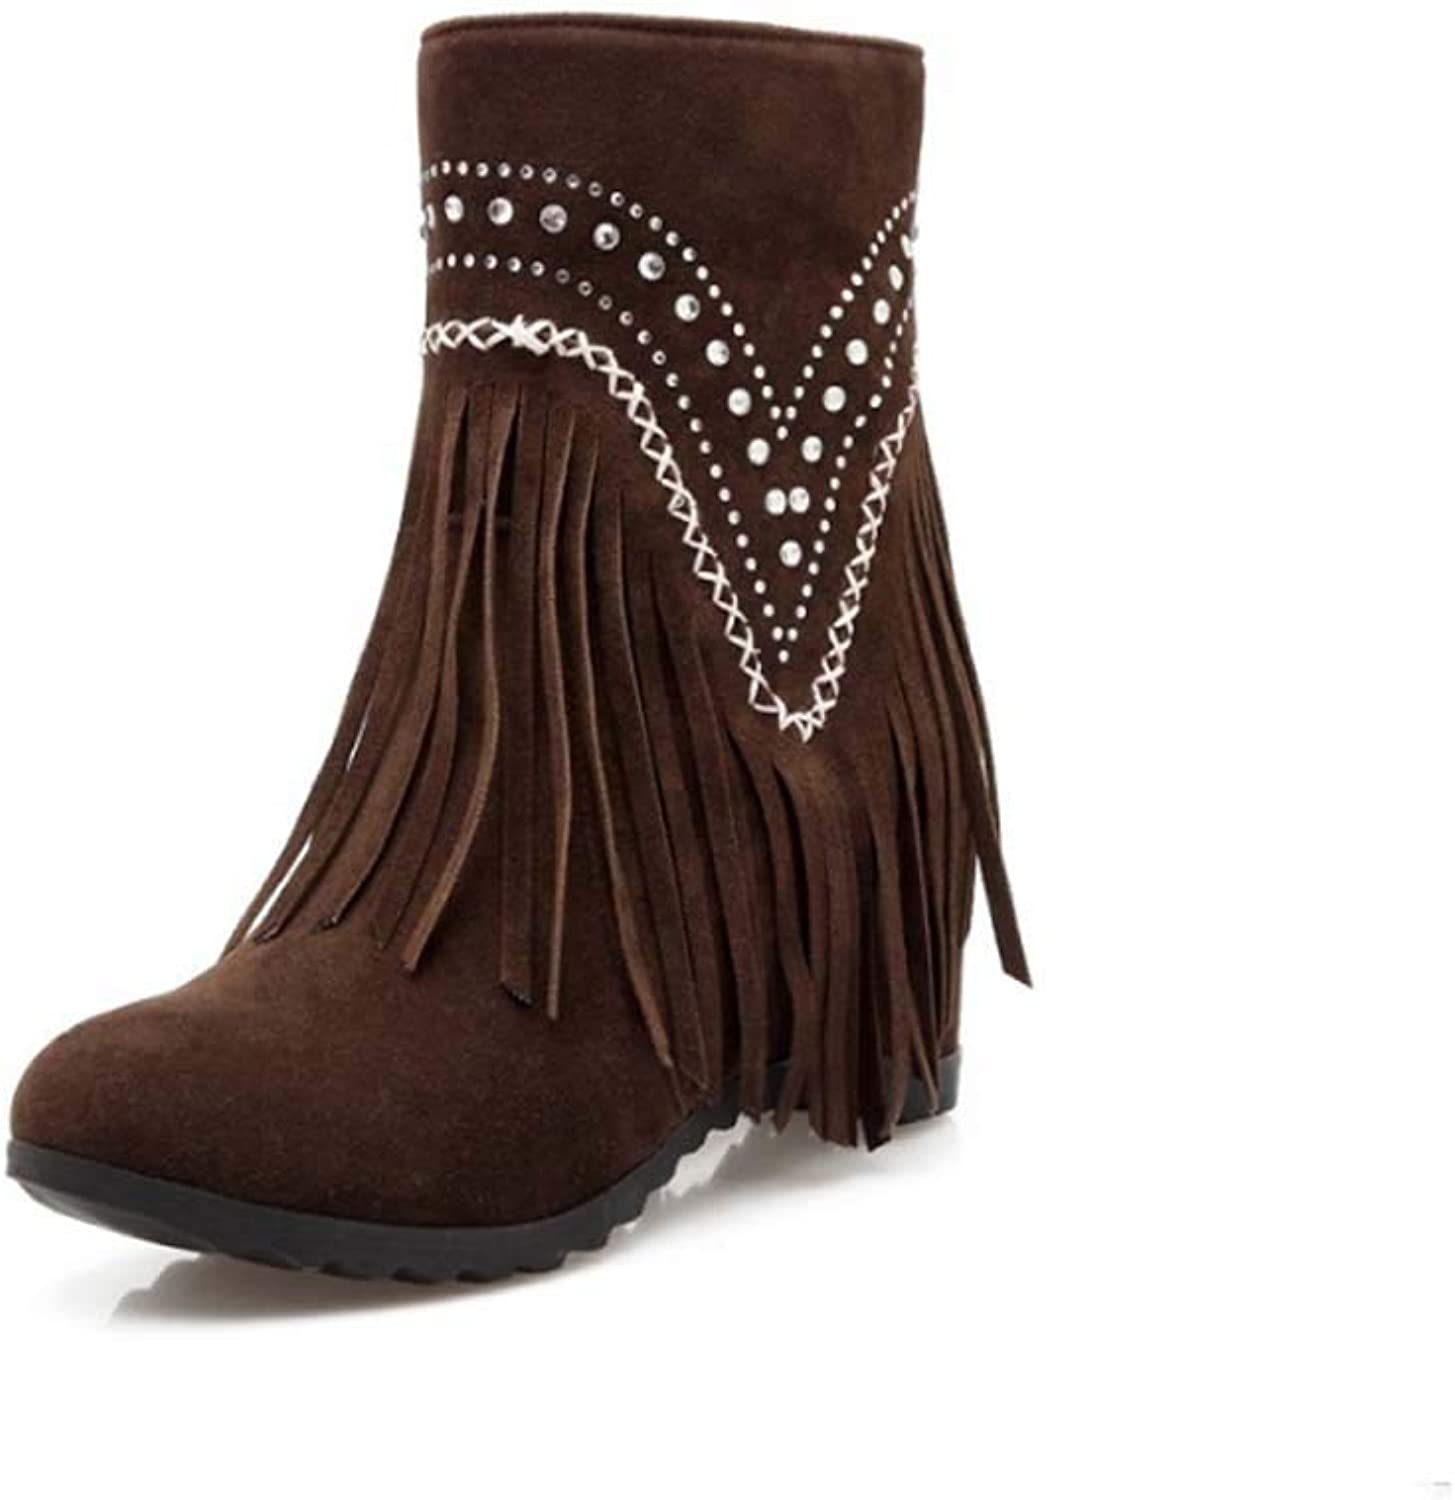 Winter Boots Women Heels, Ladies shoes Fashion Ankle Solid Fringe Bootie Short Indoor Outdoor Ankle Booties Short Boots,Brown,43EU